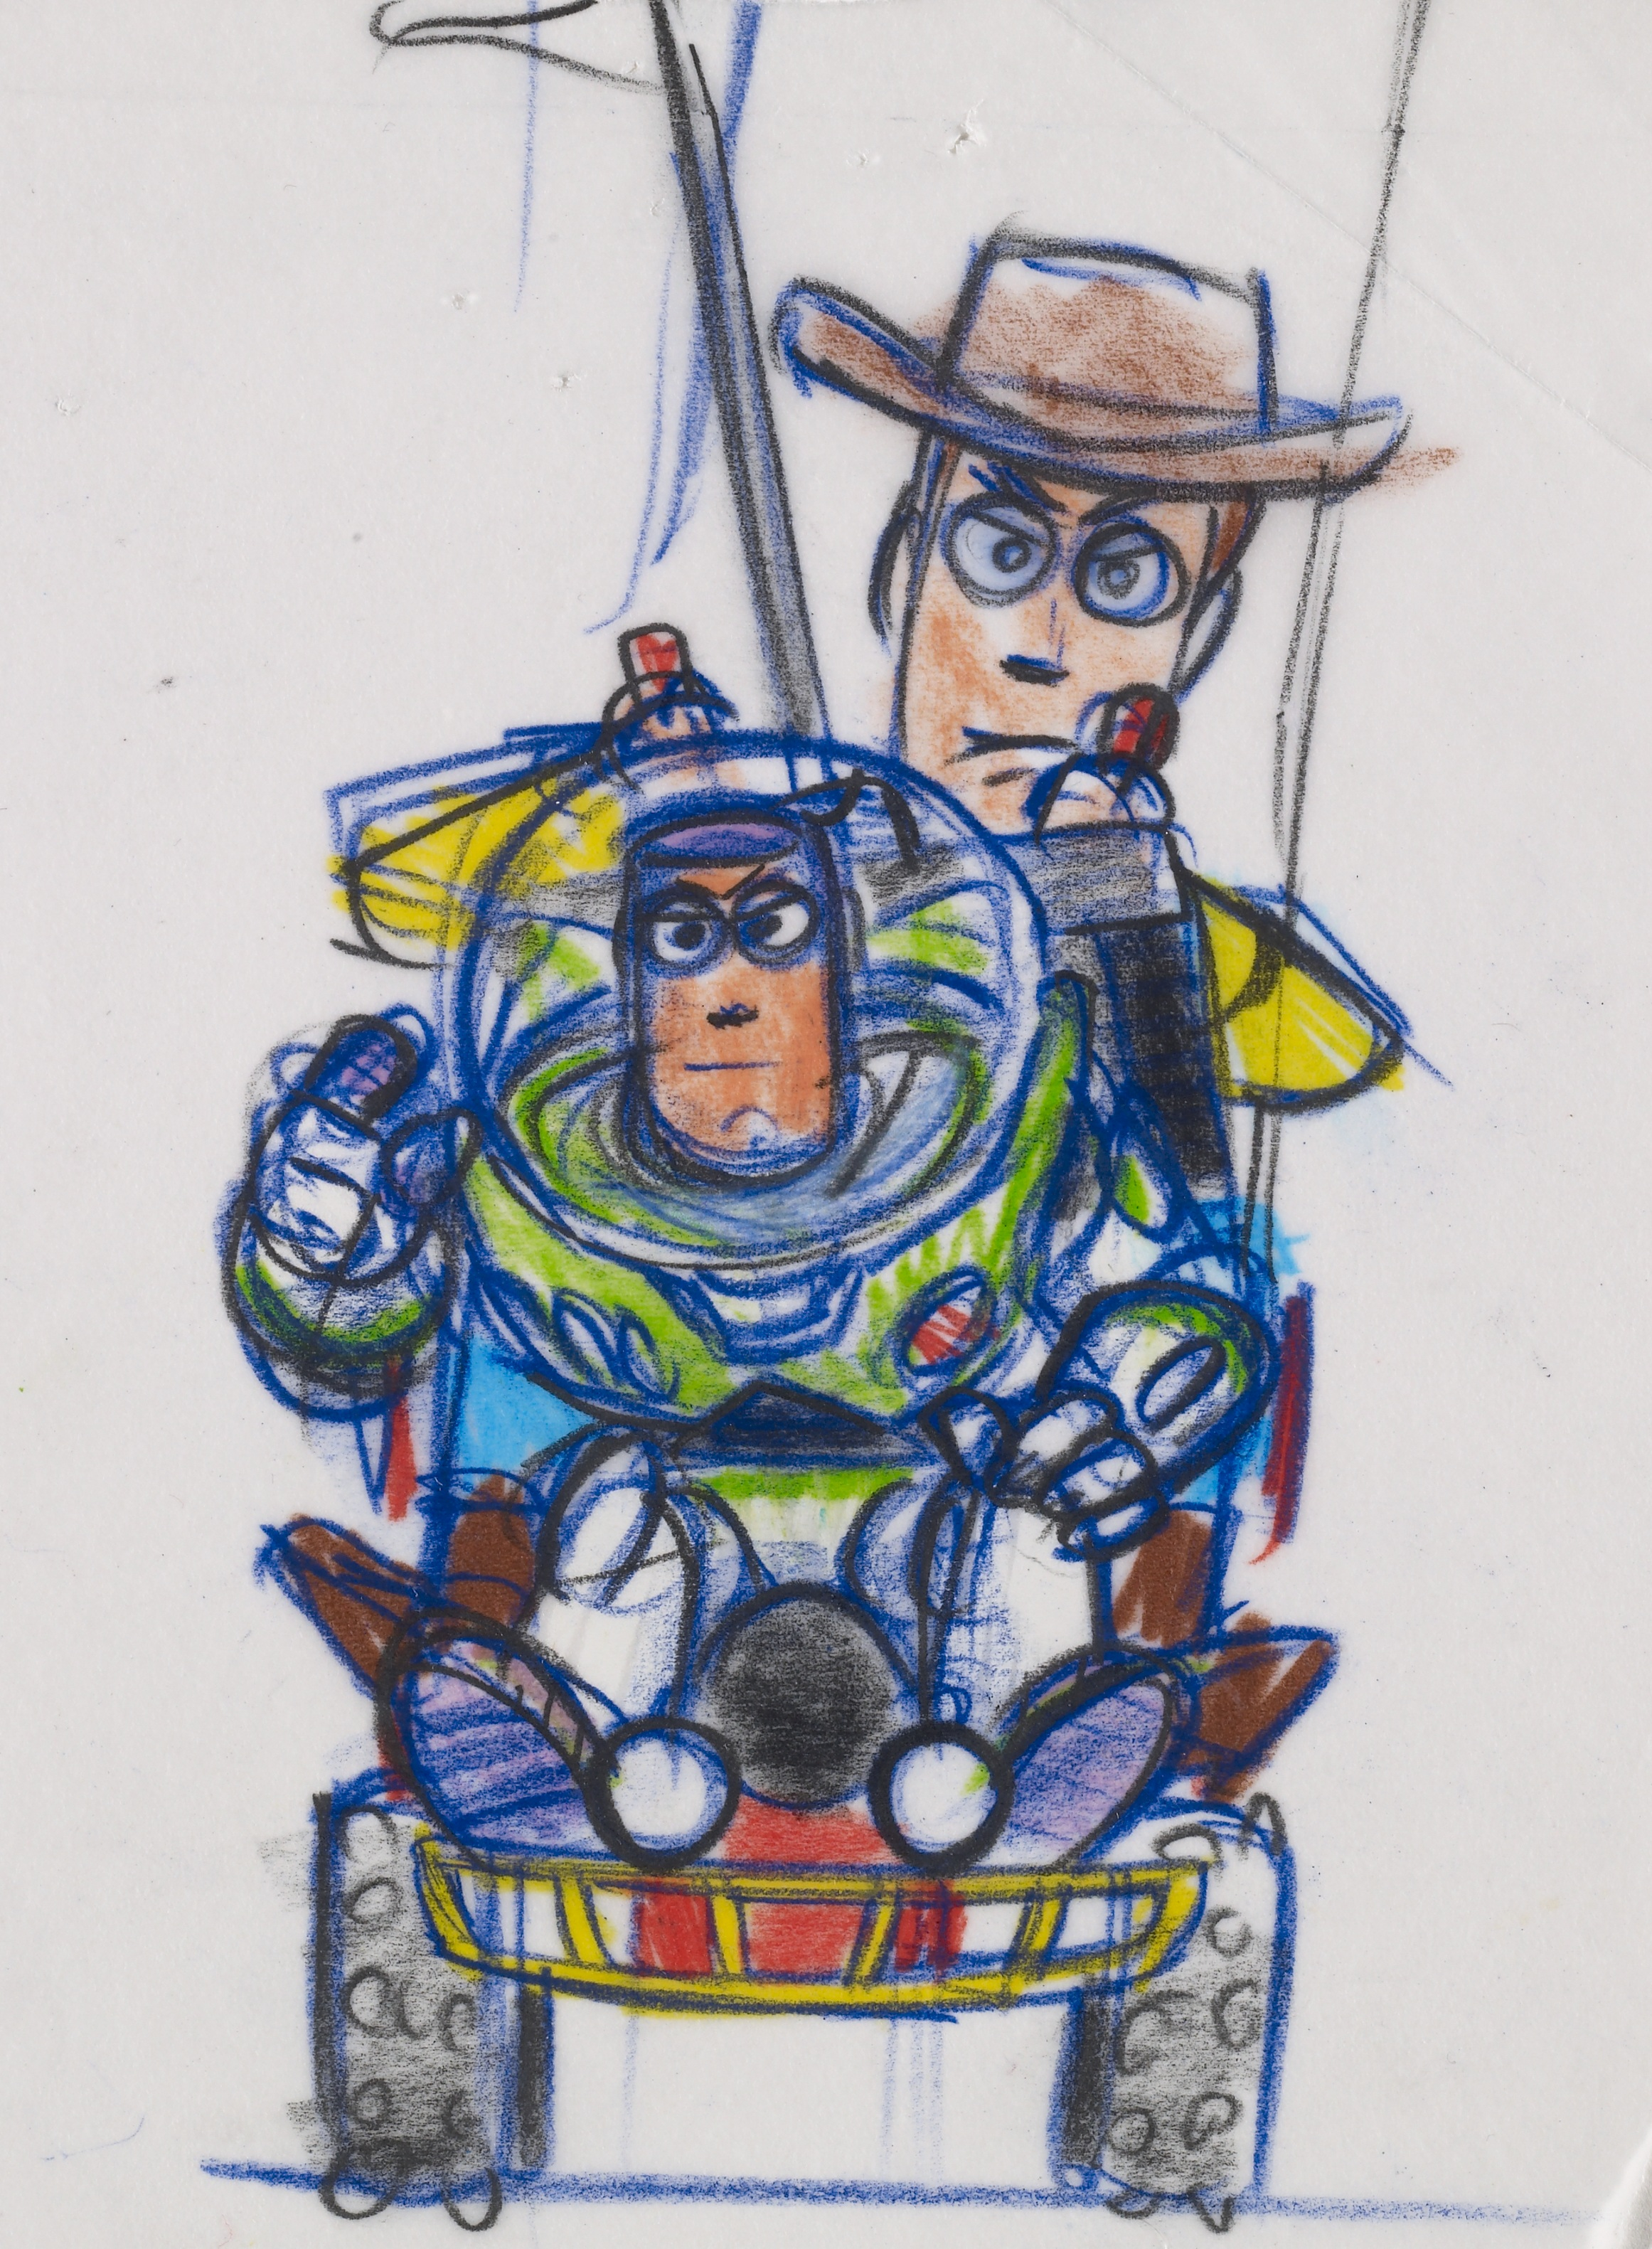 Woody y Buzz (Toy Story, 1995)